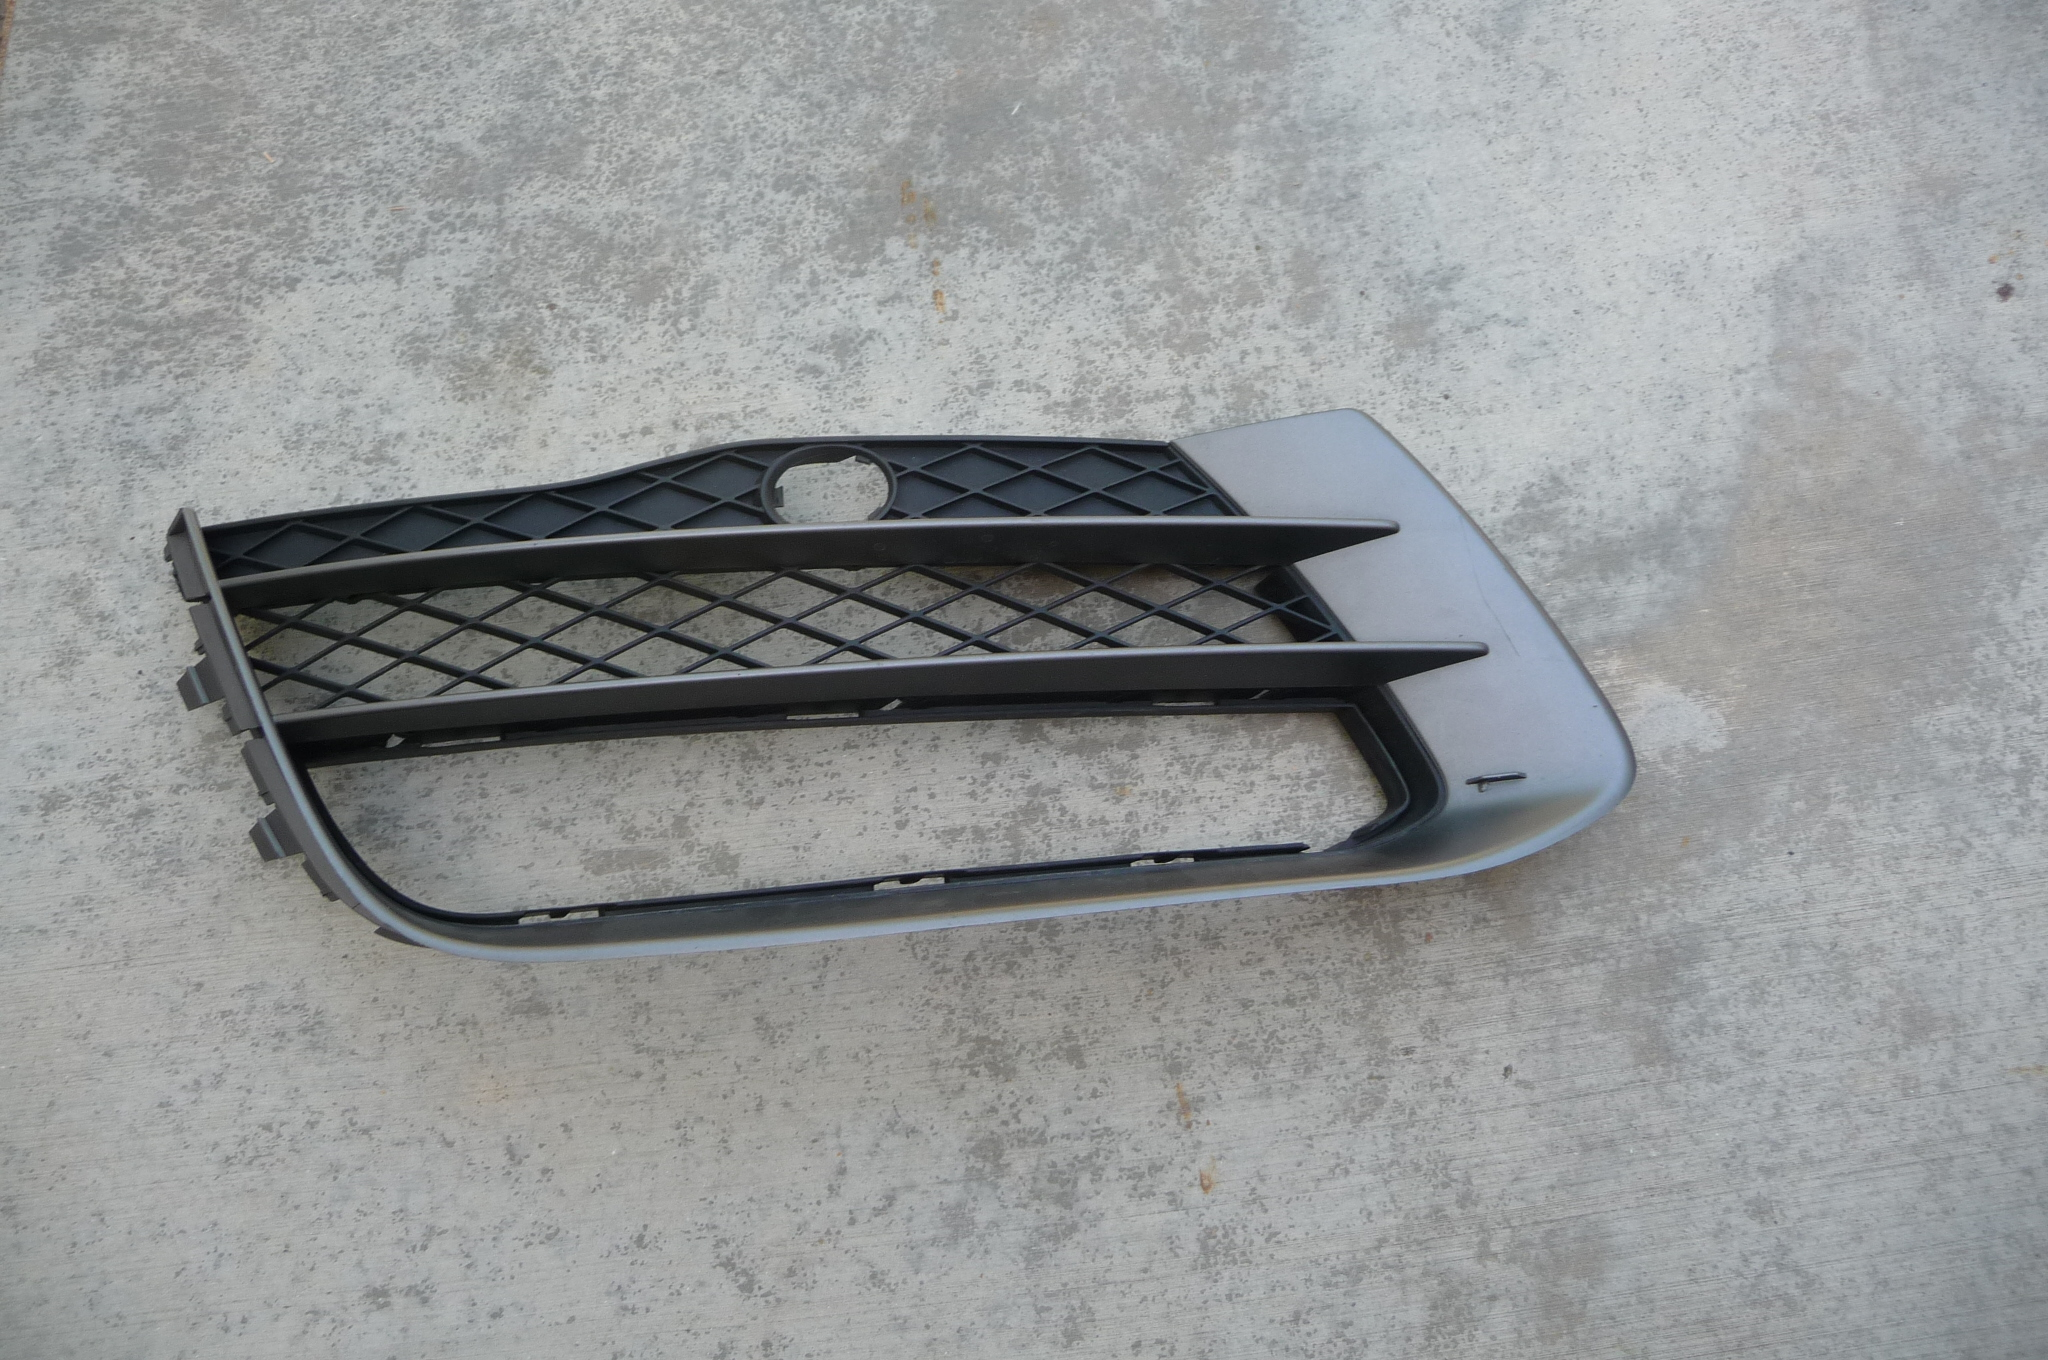 2010-2012 Audi R8 Front Bumper Right Grill Grille (miss.part) 420807684A OEM OE